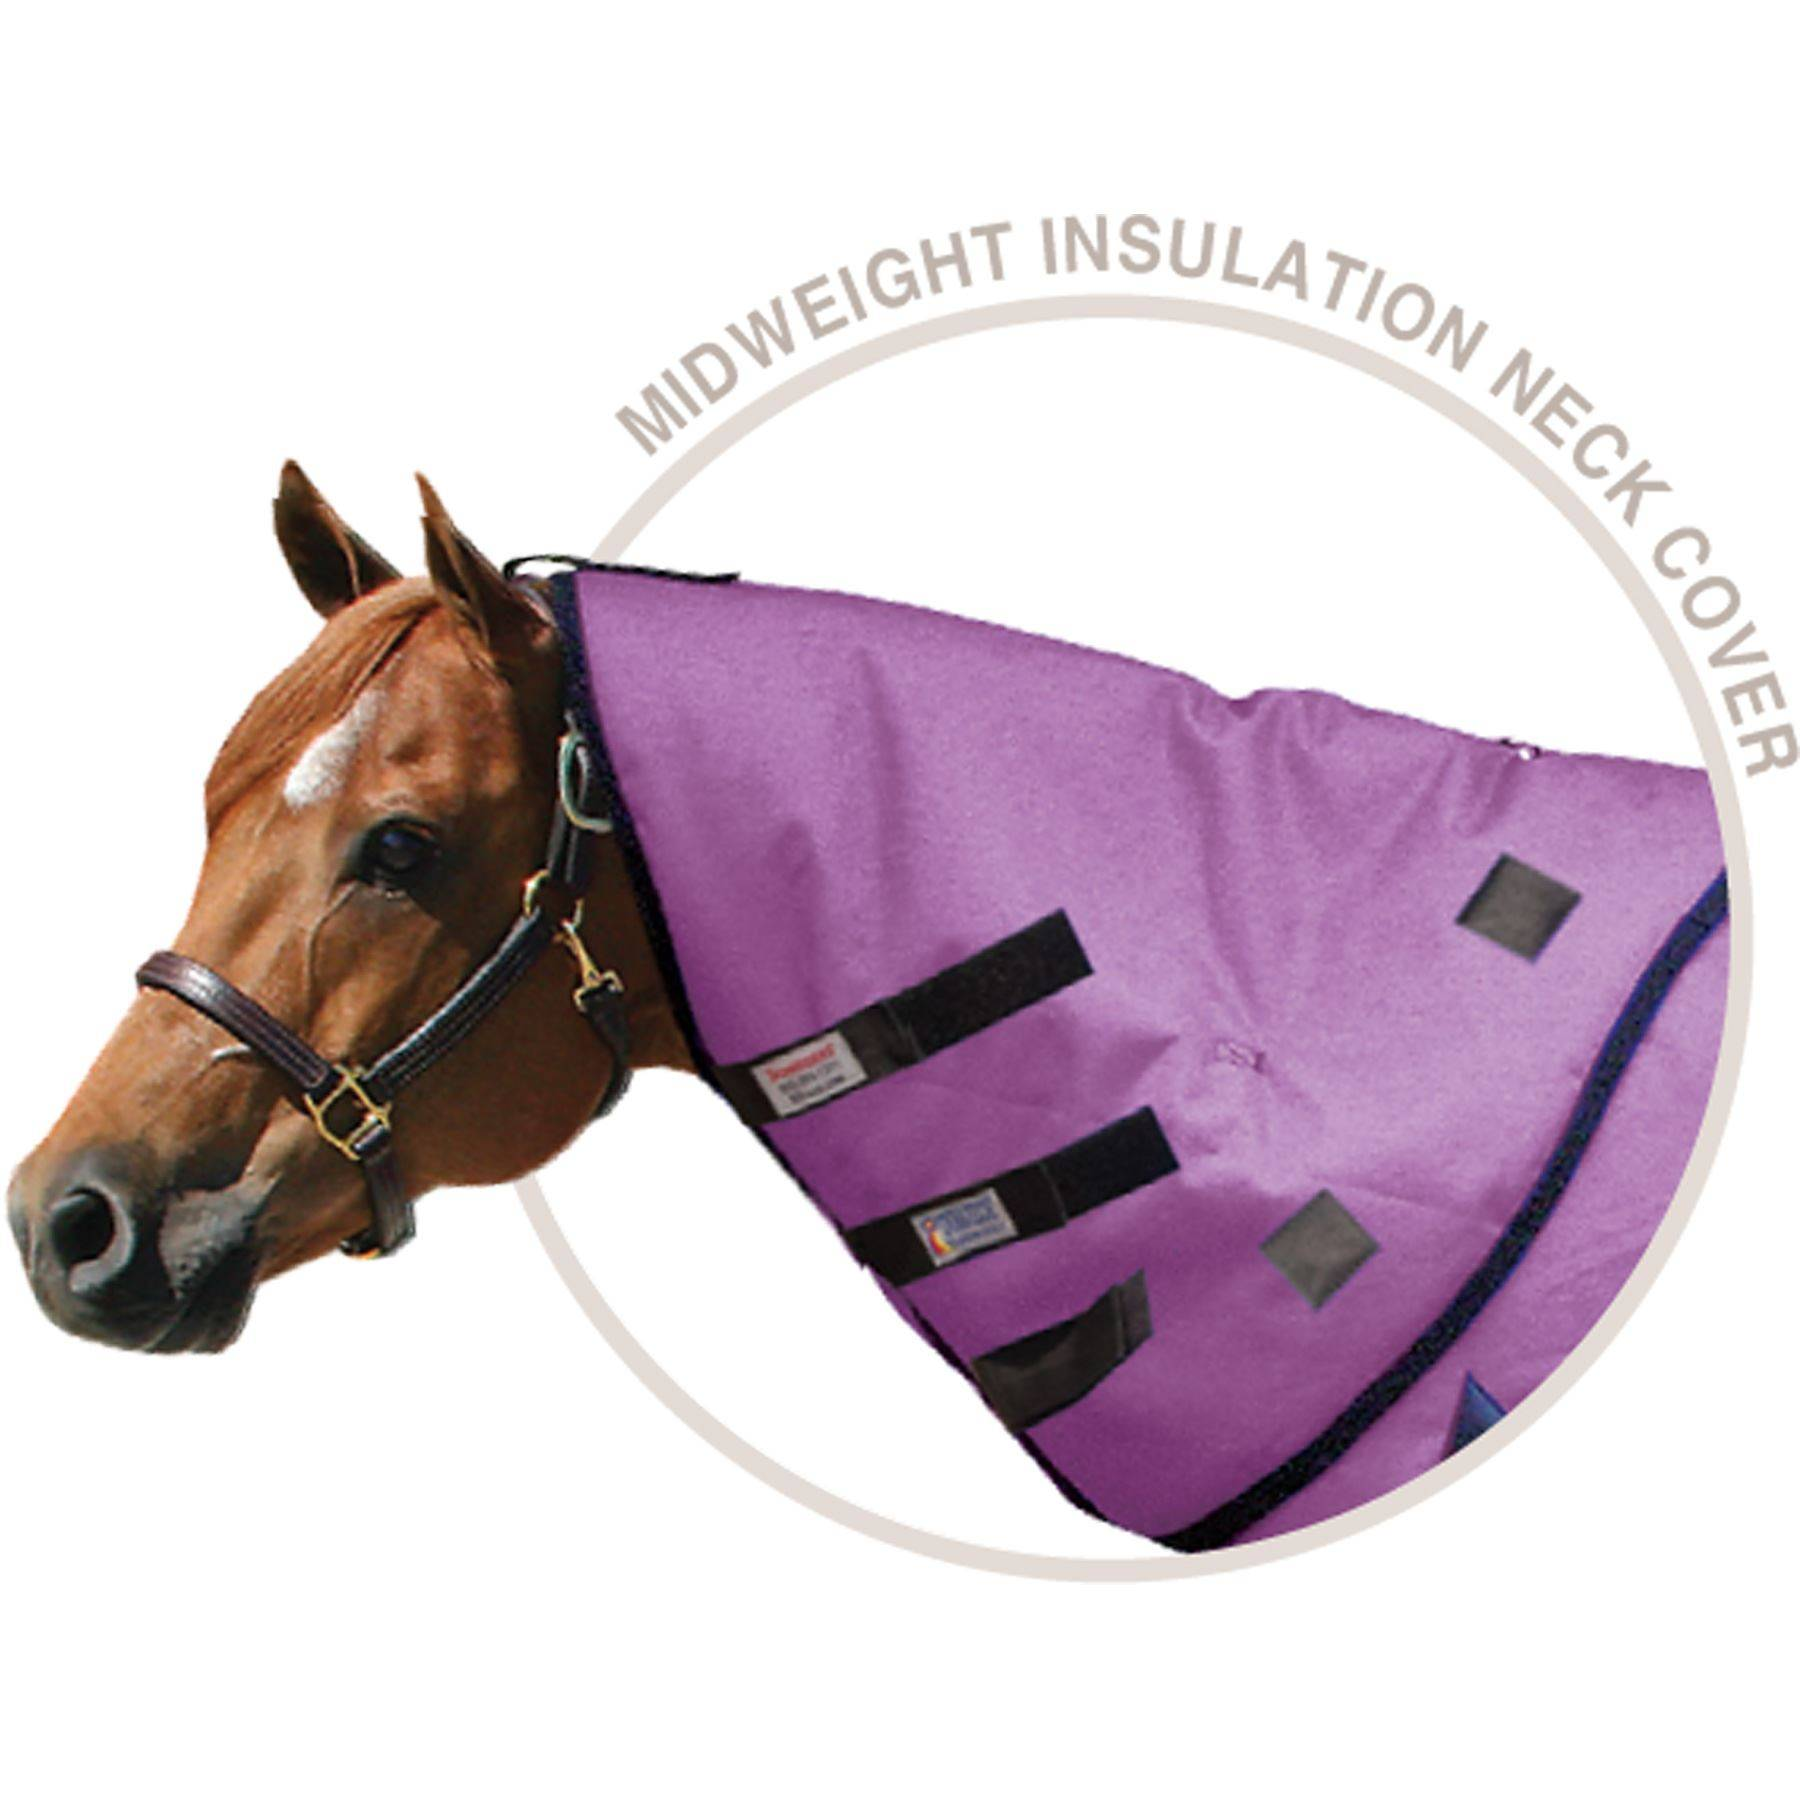 StormShield® CONTOUR COLLAR Waterproof/Breathable Turnout Neck Cover